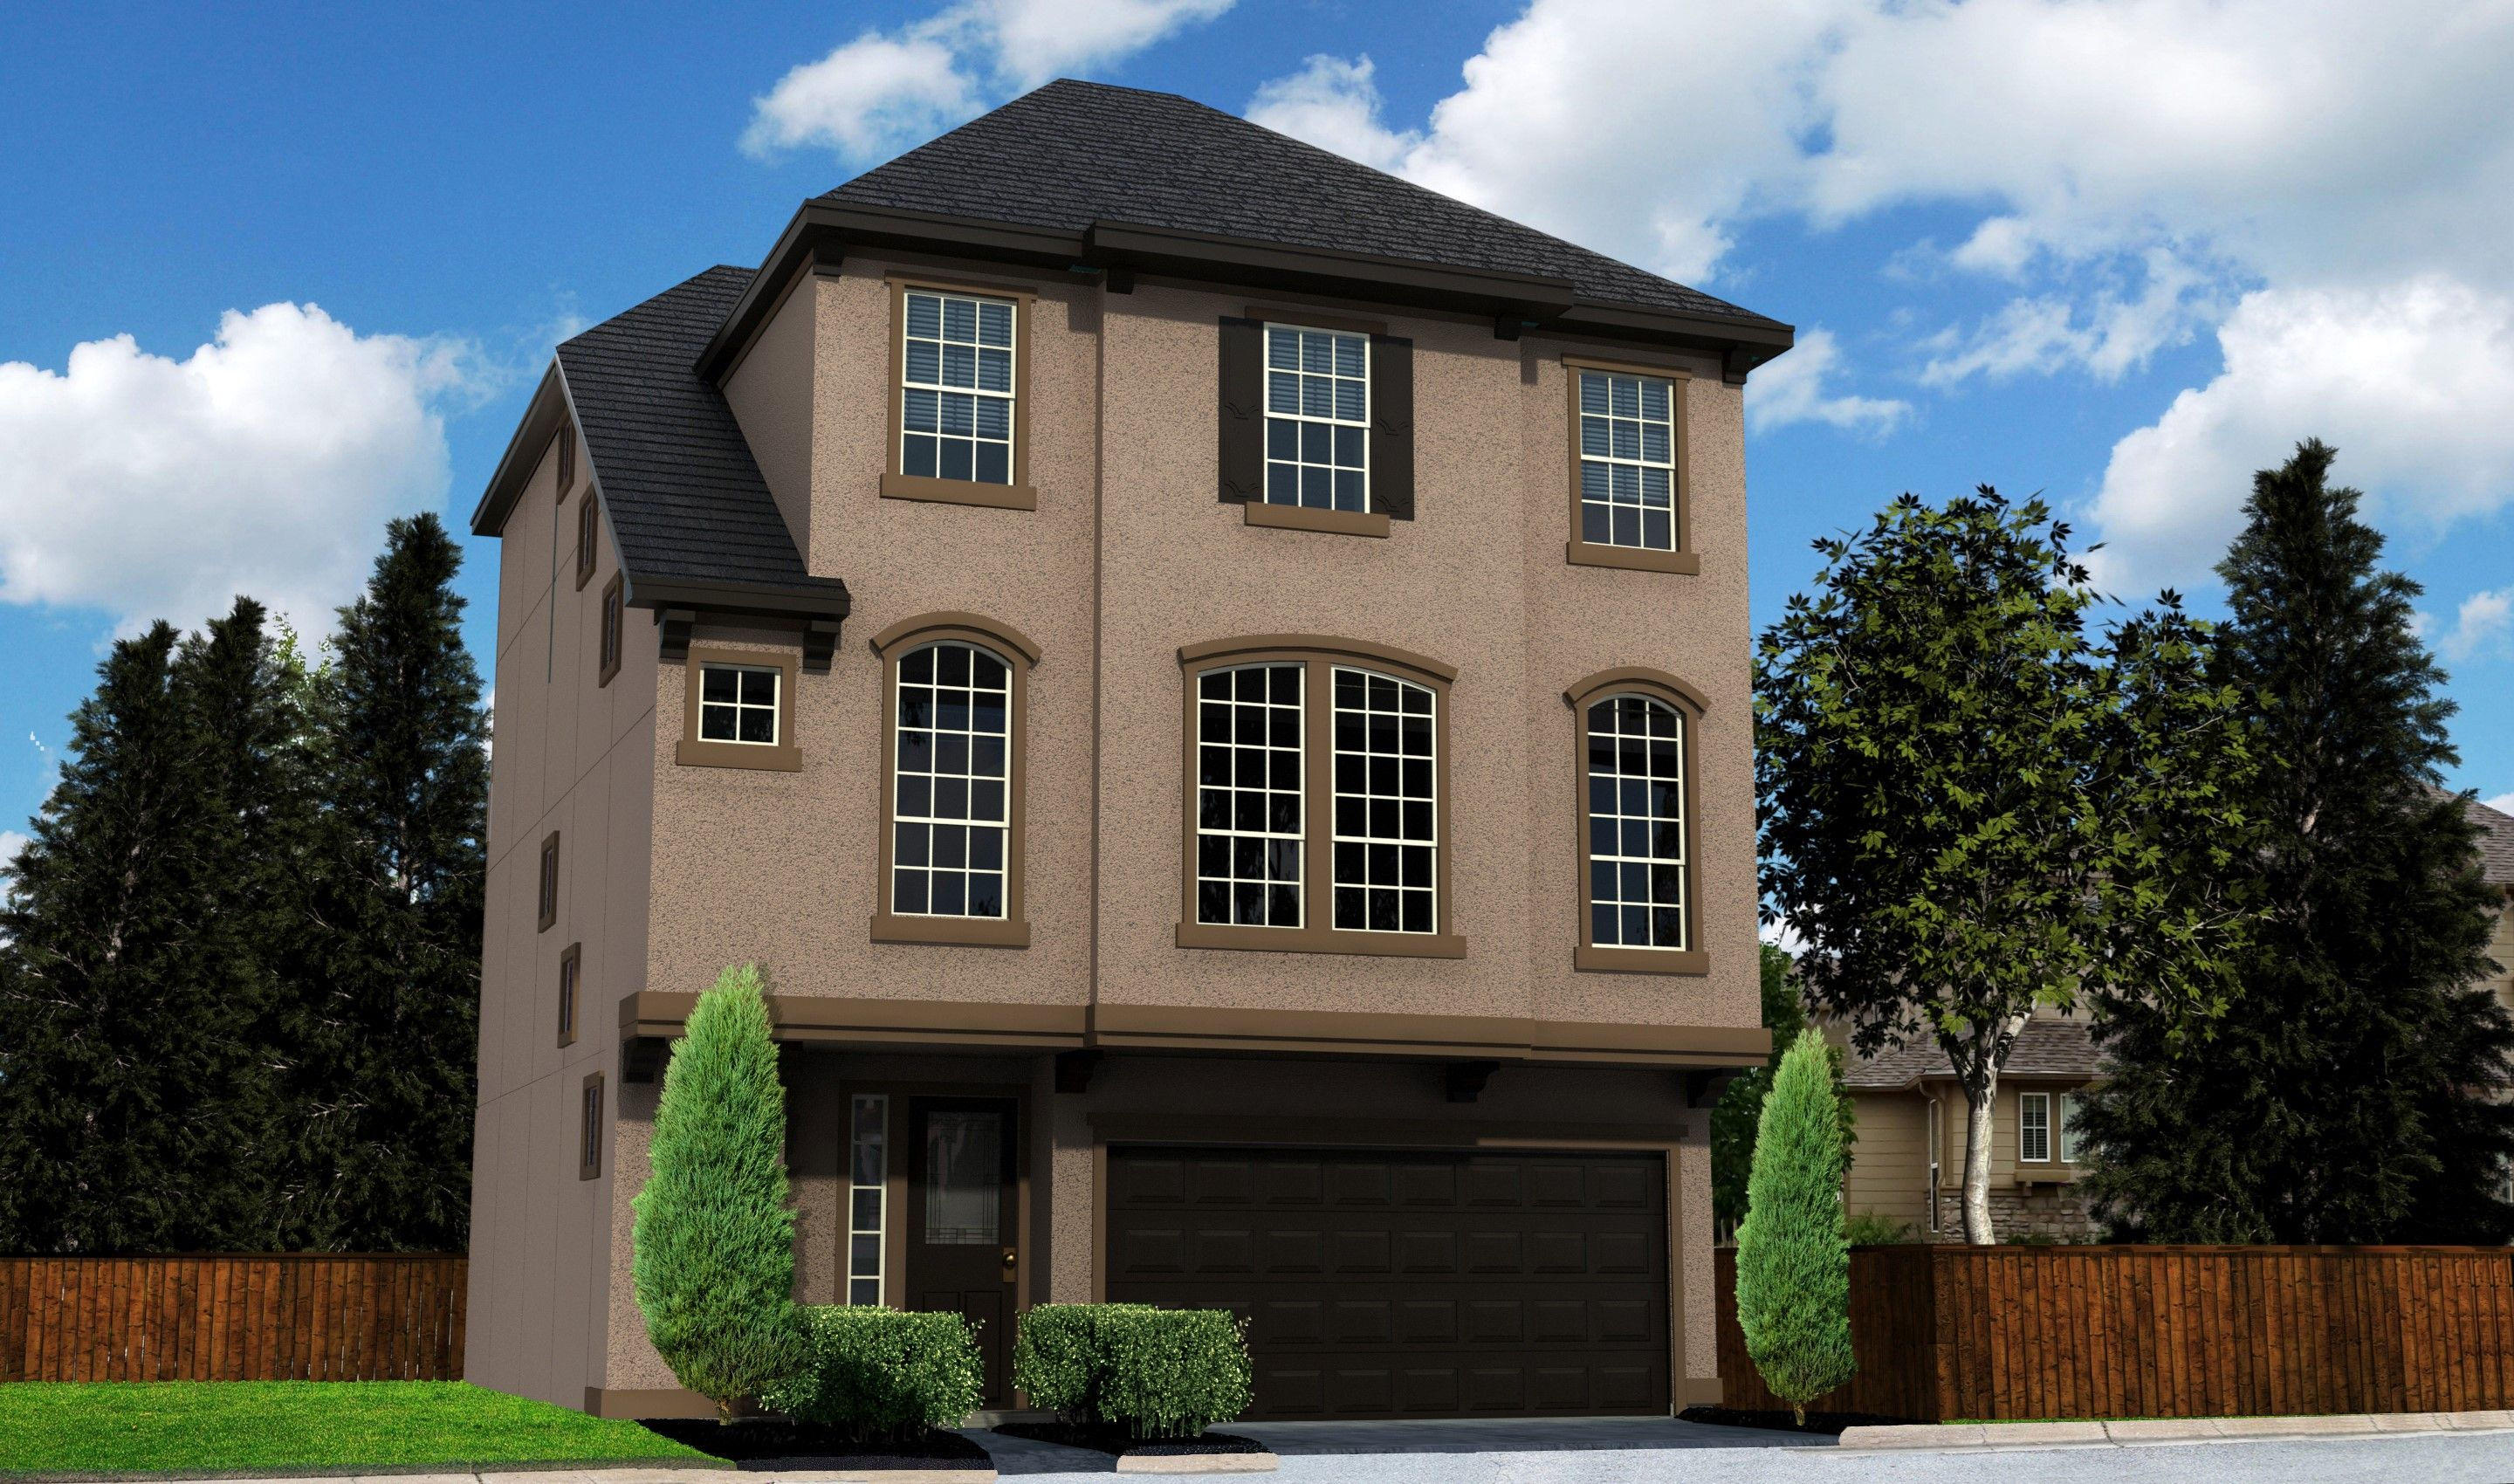 Single Family for Sale at Enclave At Oxford Park - Venice 12215 Oxford Crescent Circle Houston, Texas 77082 United States